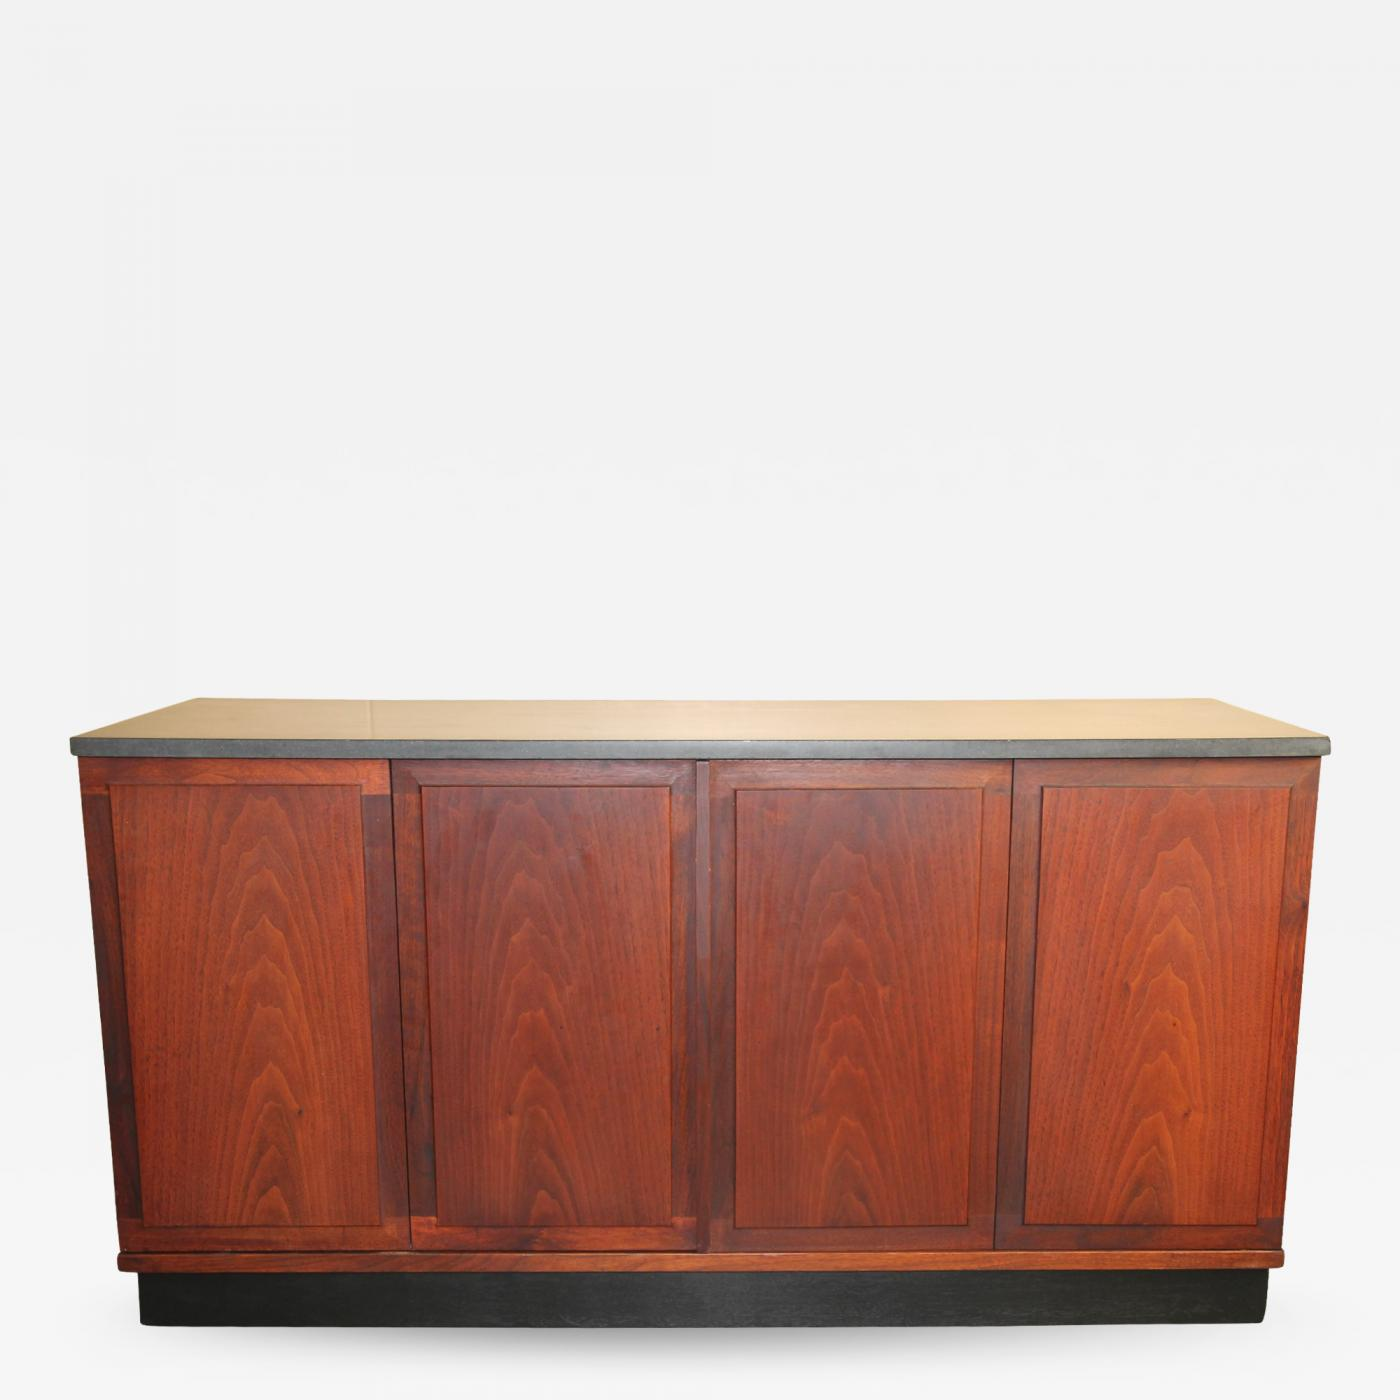 Founders Furniture Company Walnut Credenza With Slate Top